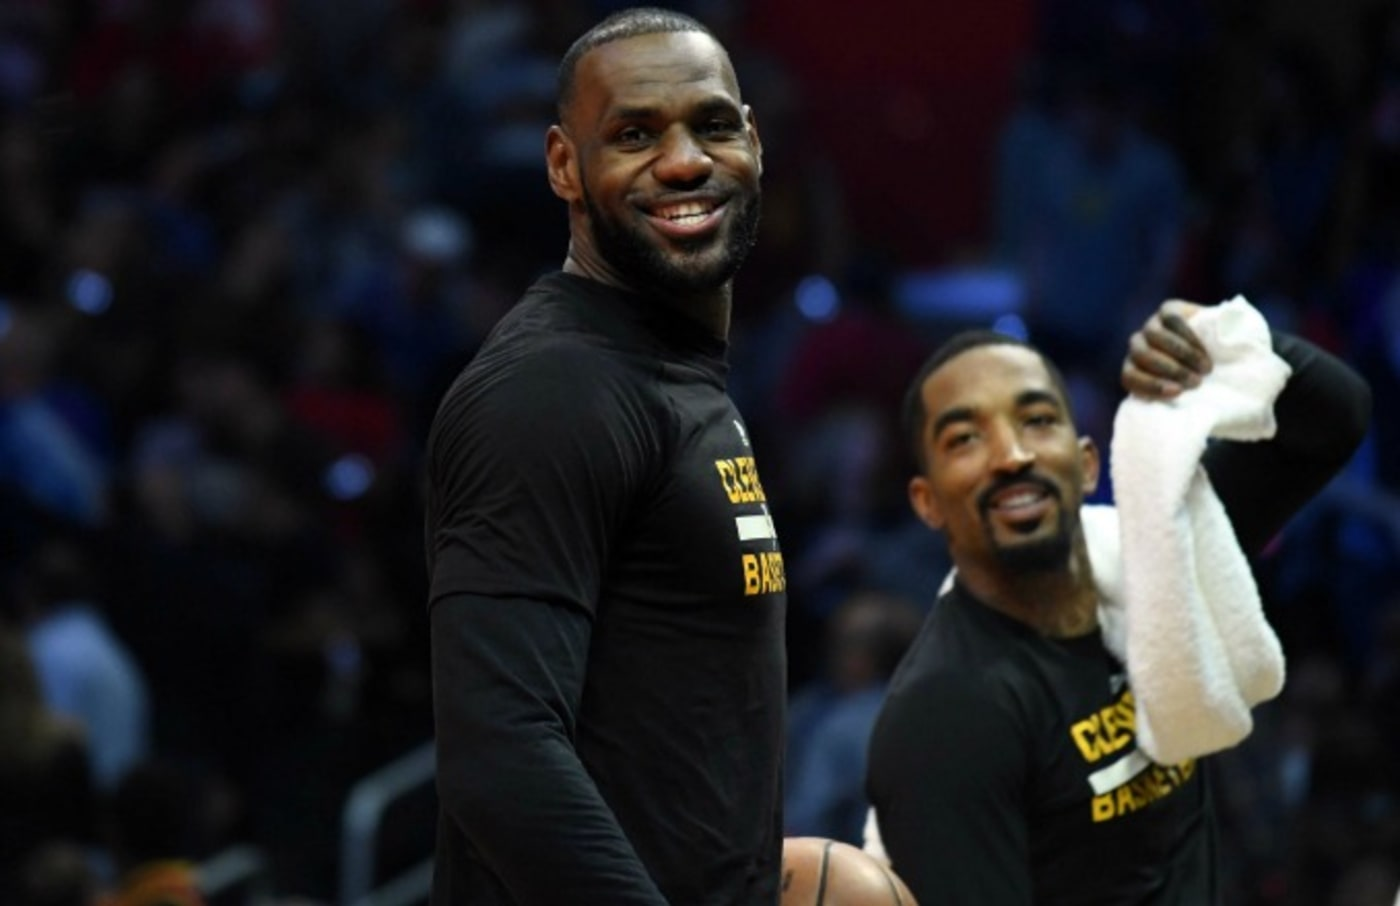 LeBron James laughs on the bench.